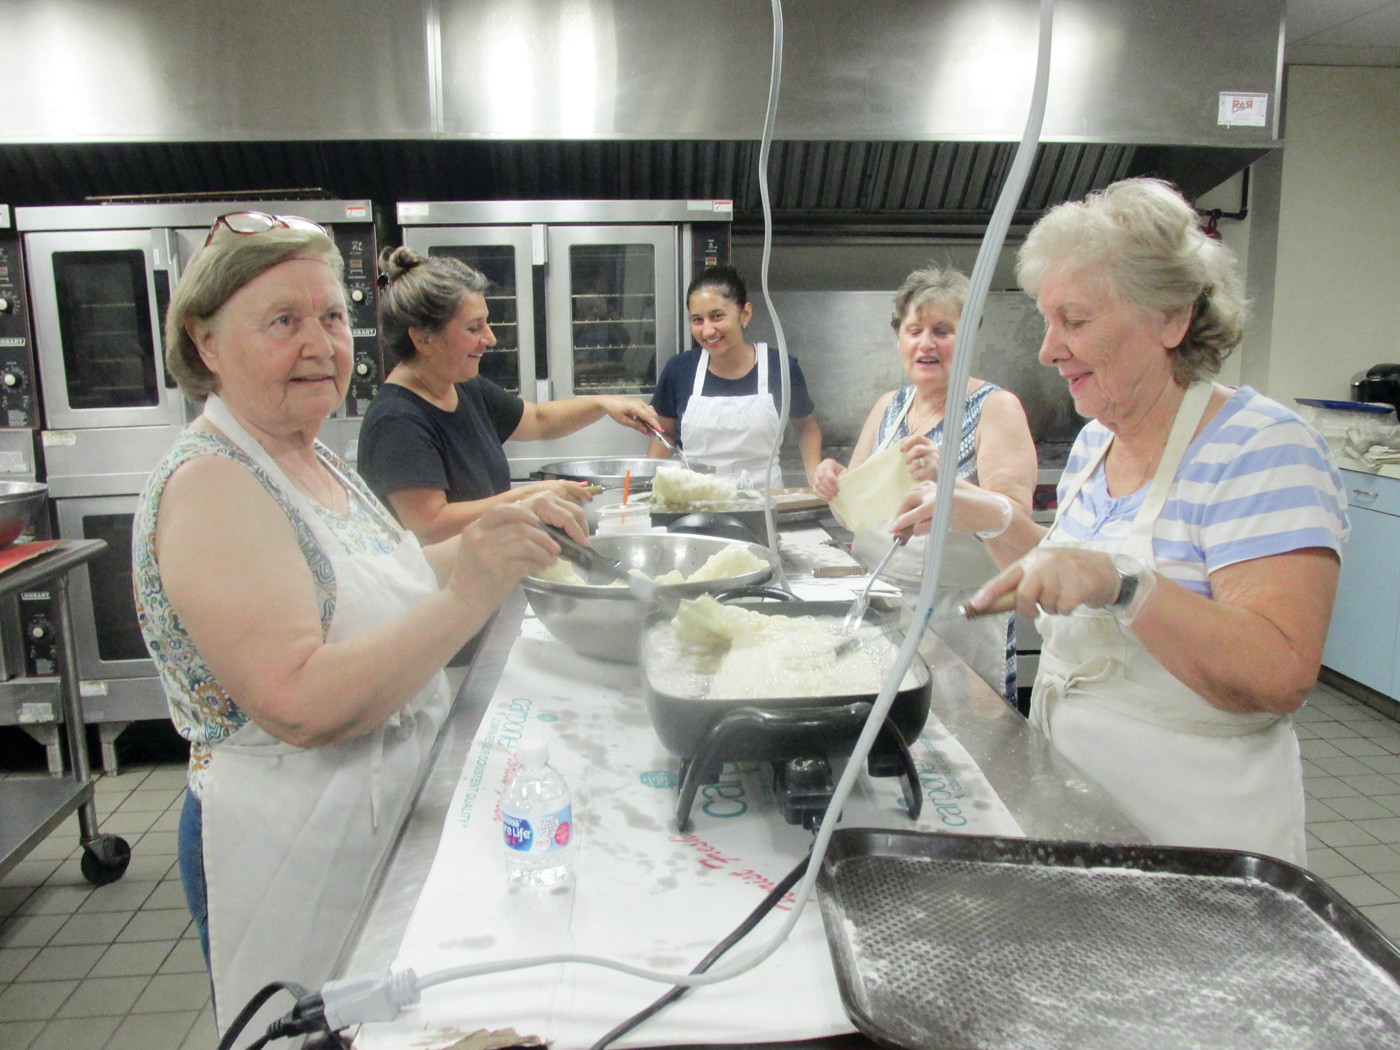 FRYING FAITHFUL: Armed with love for their church and their Greek heritage, volunteers Lisa Petrou, Anna Lekos, Adrianna Falcon, Roula Pryous and Anna Falcon fry the dough in individual old-time fry pans that later results in delicious diples.